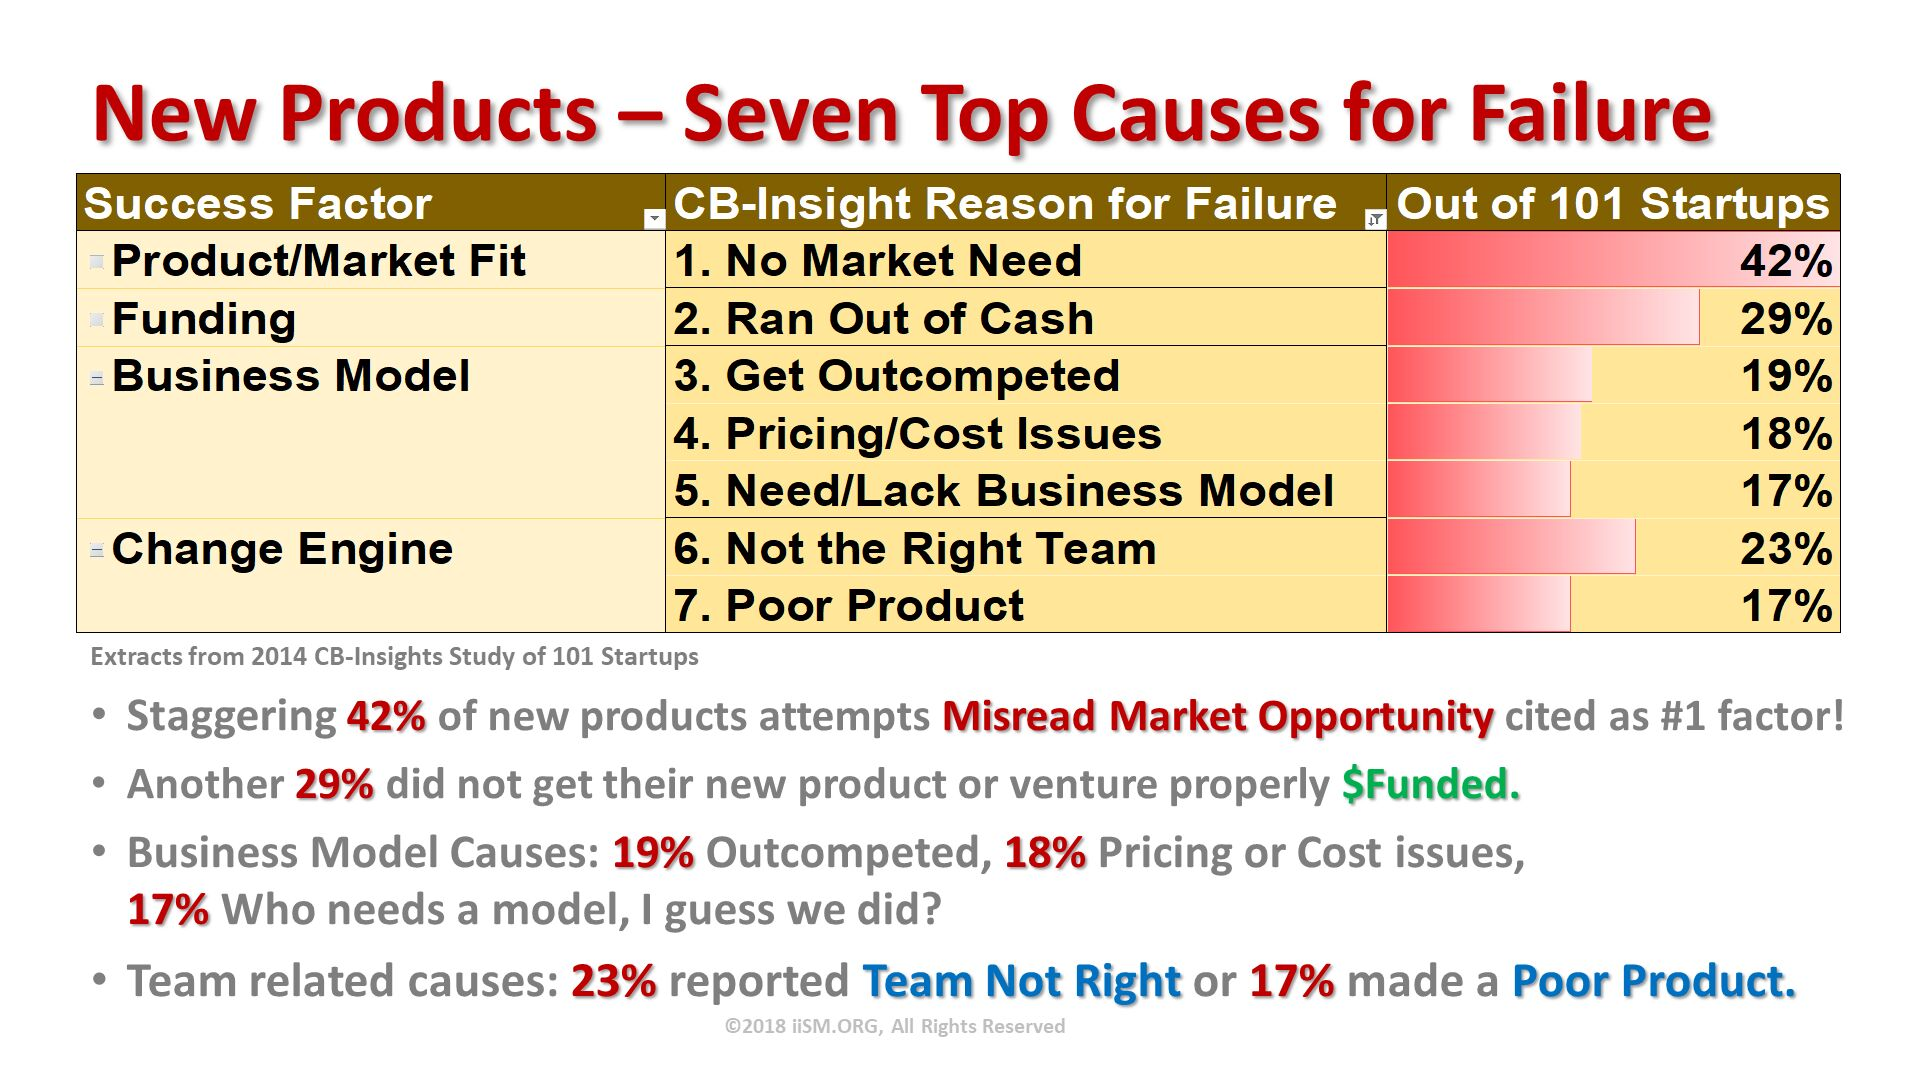 New Products – Seven Top Causes for Failure. Staggering 42% of new products attempts Misread Market Opportunity cited as #1 factor! Another 29% did not get their new product or venture properly $Funded. Business Model Causes: 19% Outcompeted, 18% Pricing or Cost issues, 17% Who needs a model, I guess we did?  Team related causes: 23% reported Team Not Right or 17% made a Poor Product.   . ©2018 iiSM.ORG, All Rights Reserved. Extracts from 2014 CB-Insights Study of 101 Startups .